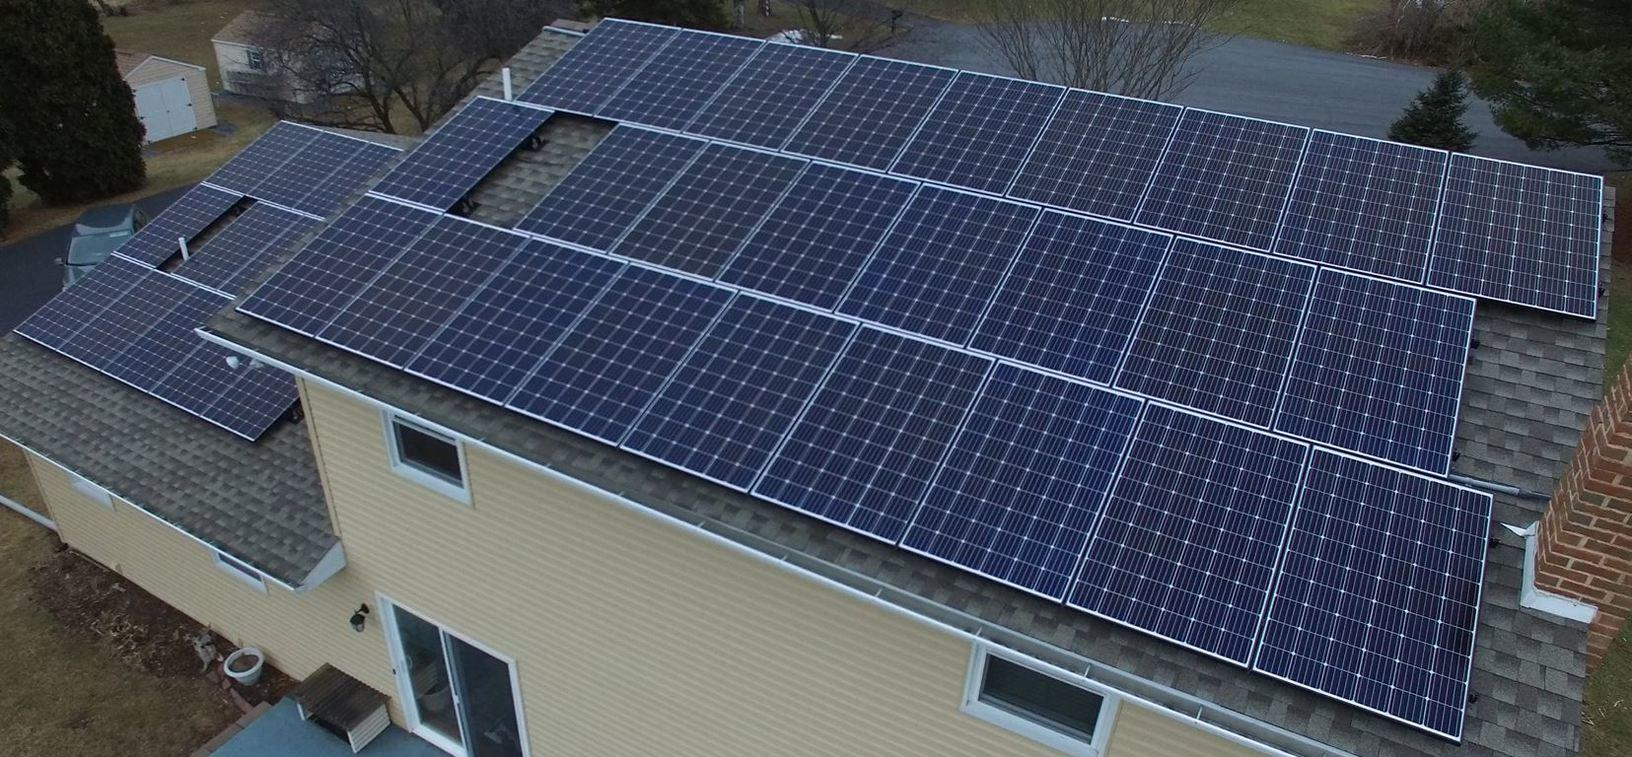 Roof Full of Solar = Lowered or No Electricity Costs